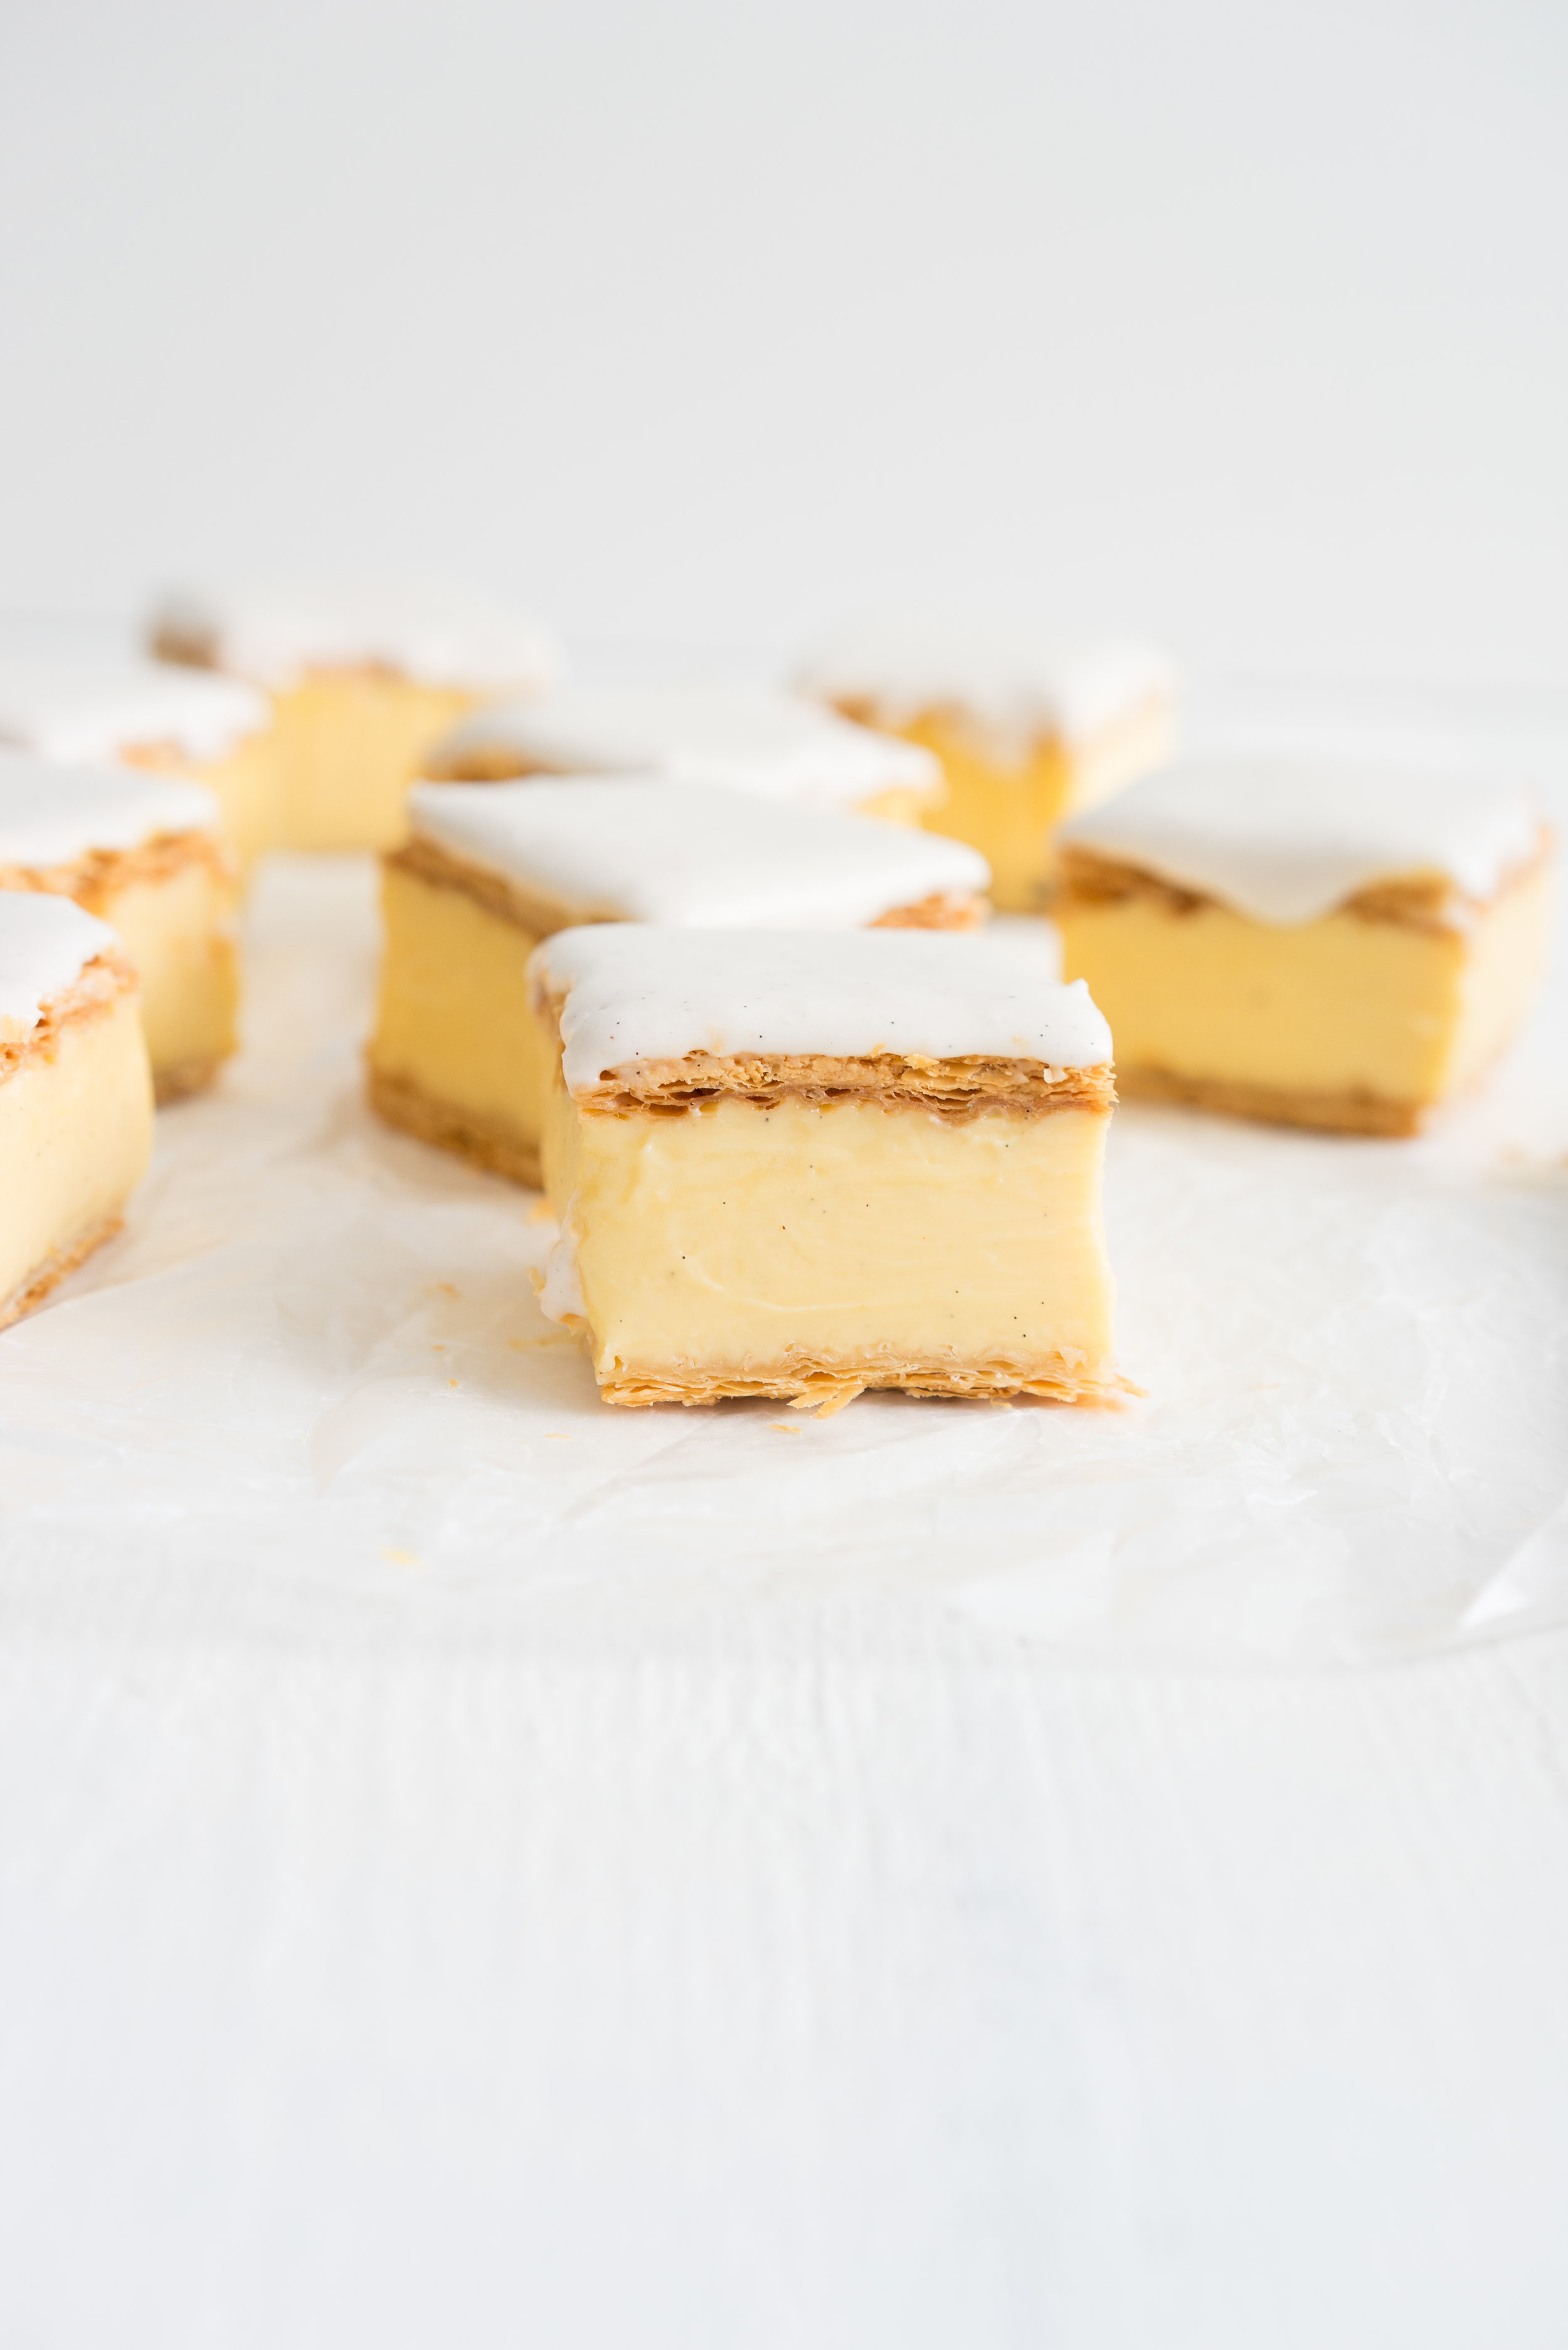 The perfect custard square - sheets of crisp flaky pastry sandwich a creamy rich vanilla bean custard. The whole thing is then loaded up with a vanilla bean glaze. This is a delicious take on a classic New Zealand childhood favourite.